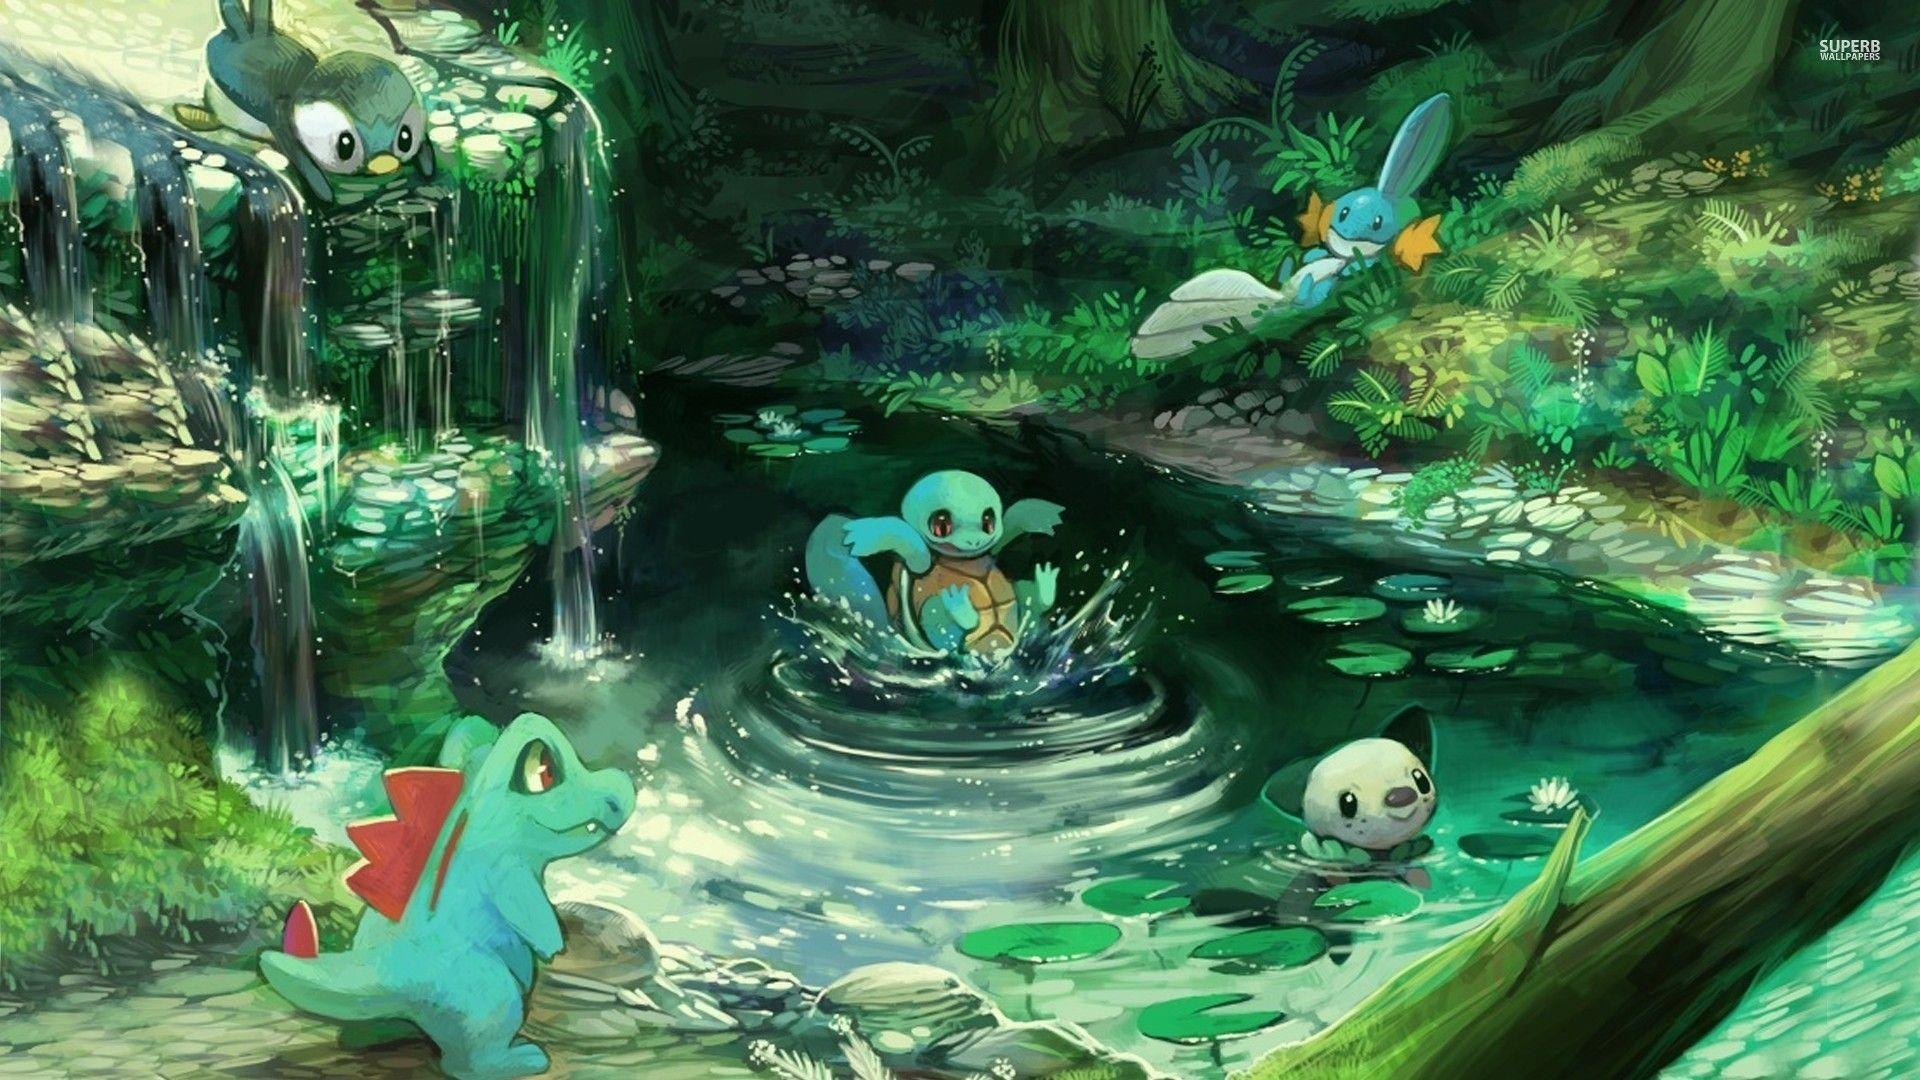 pokemon Full HD Wallpaper and Background Image | 1920x1080 | ID:686188